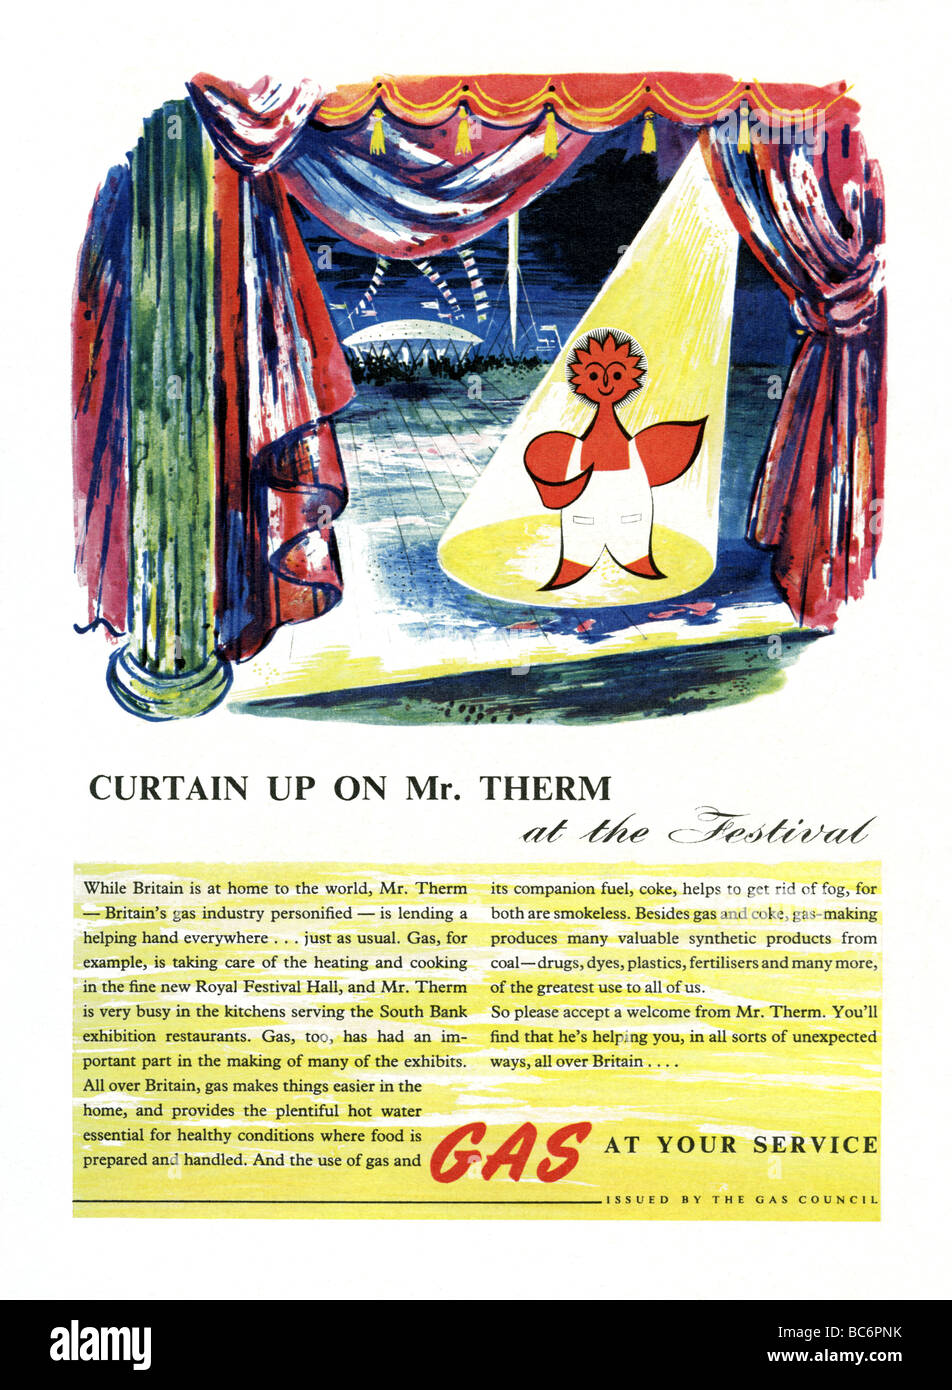 1951 colour advertisement for the British gas industry featuring Mr Therm - Stock Image